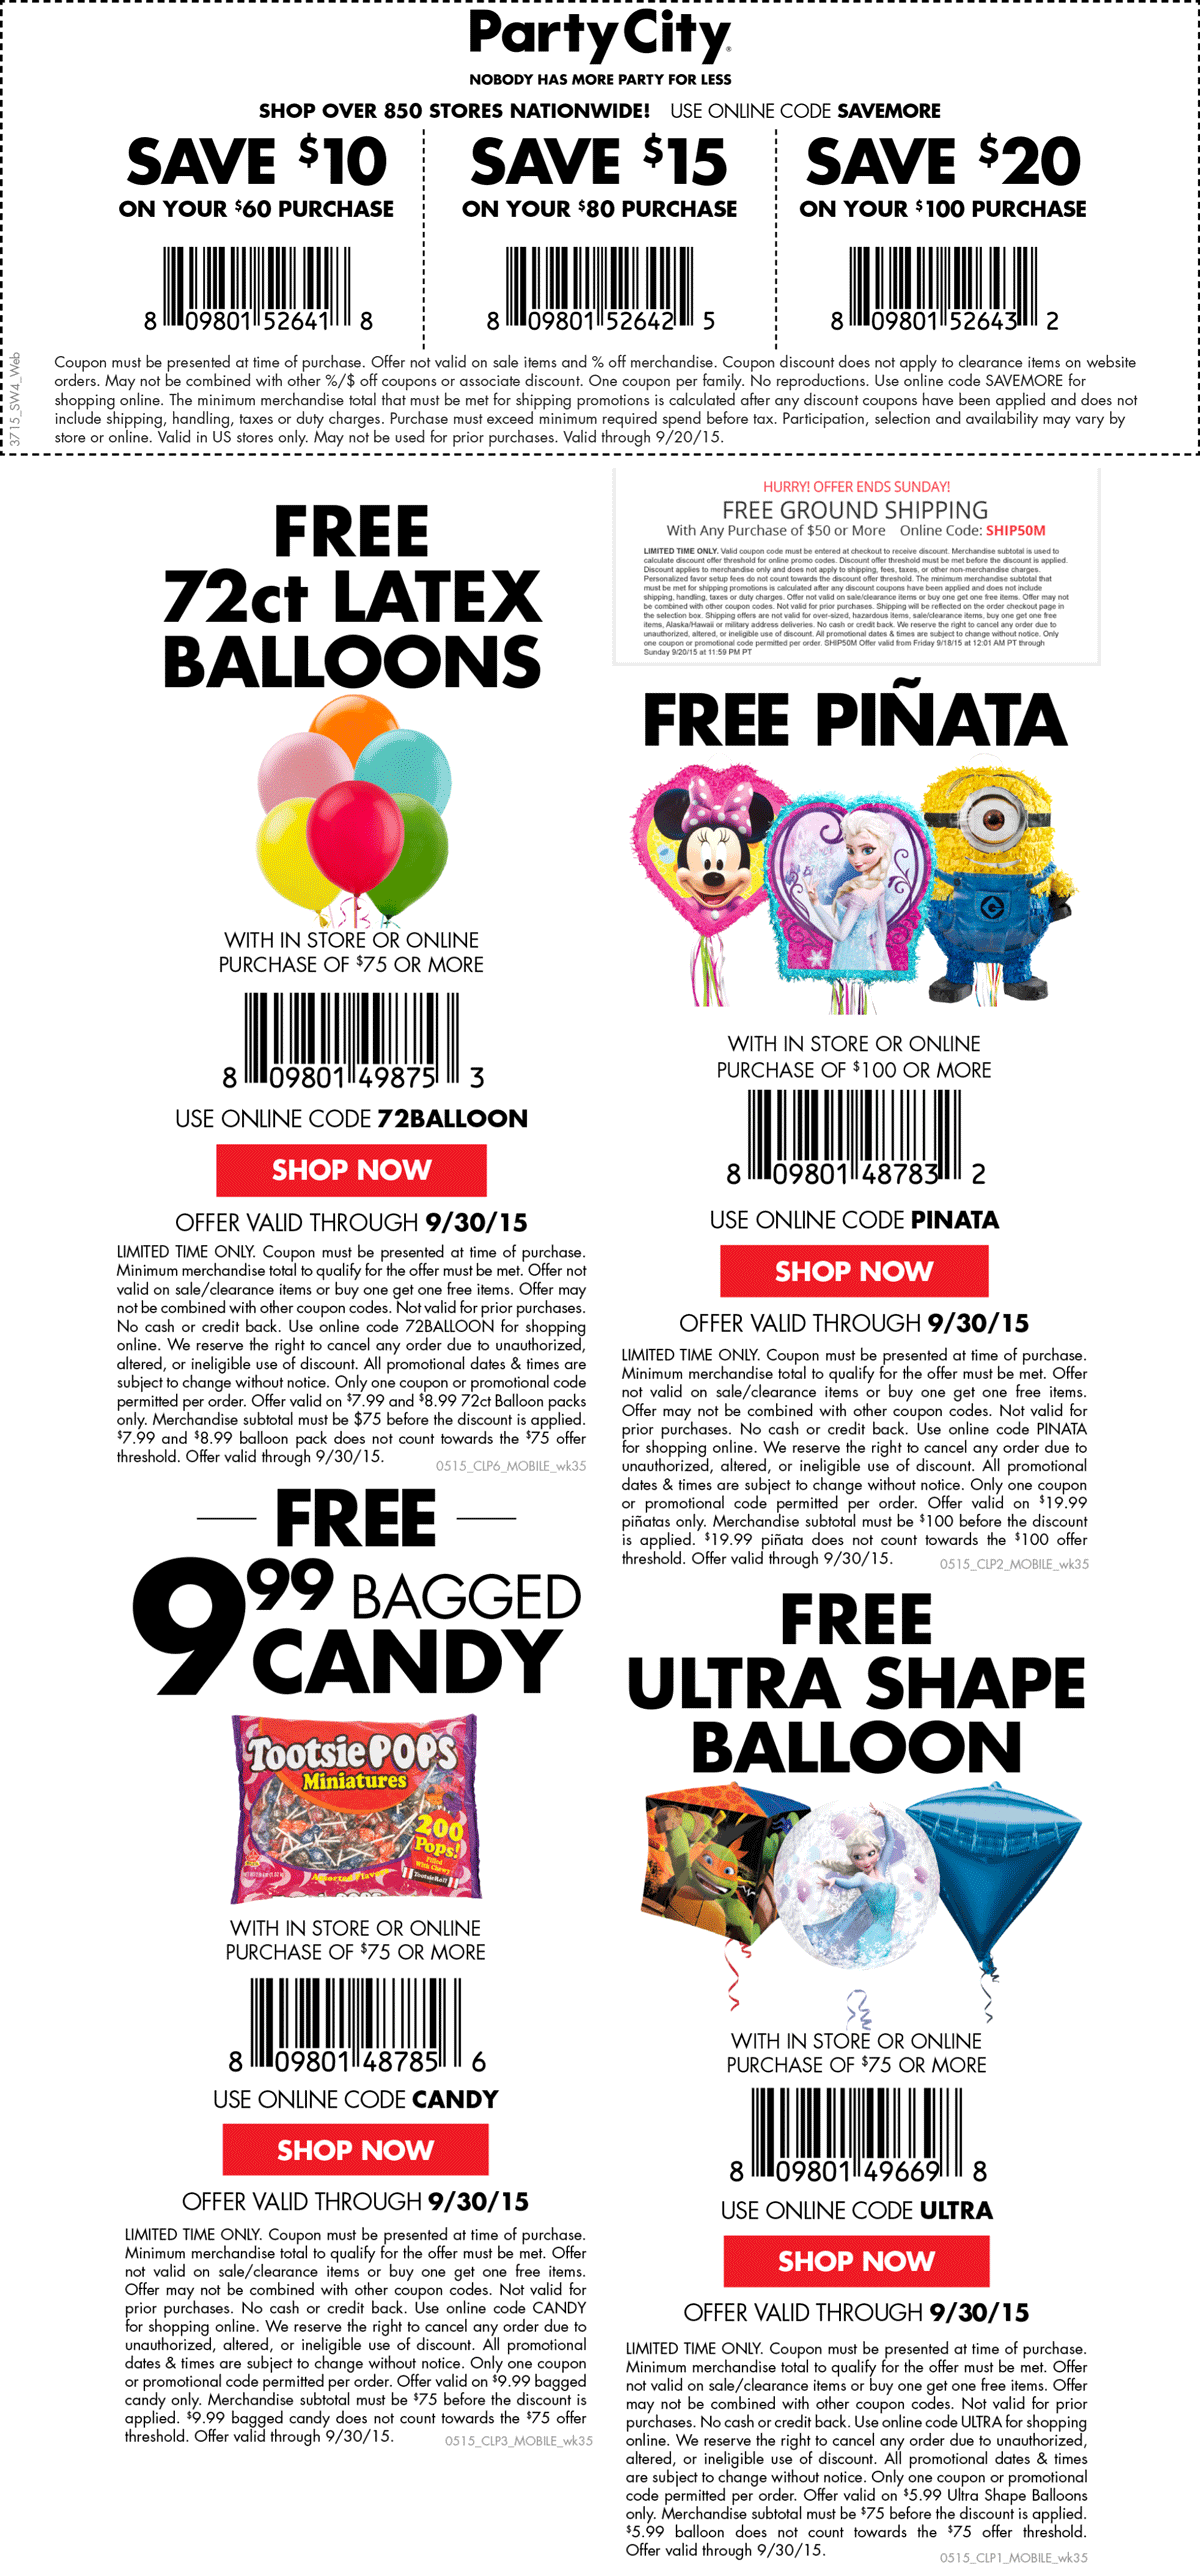 Party City Coupon June 2017 $10 off $60 + various freebies at Party City, or online via promo code SAVEMORE